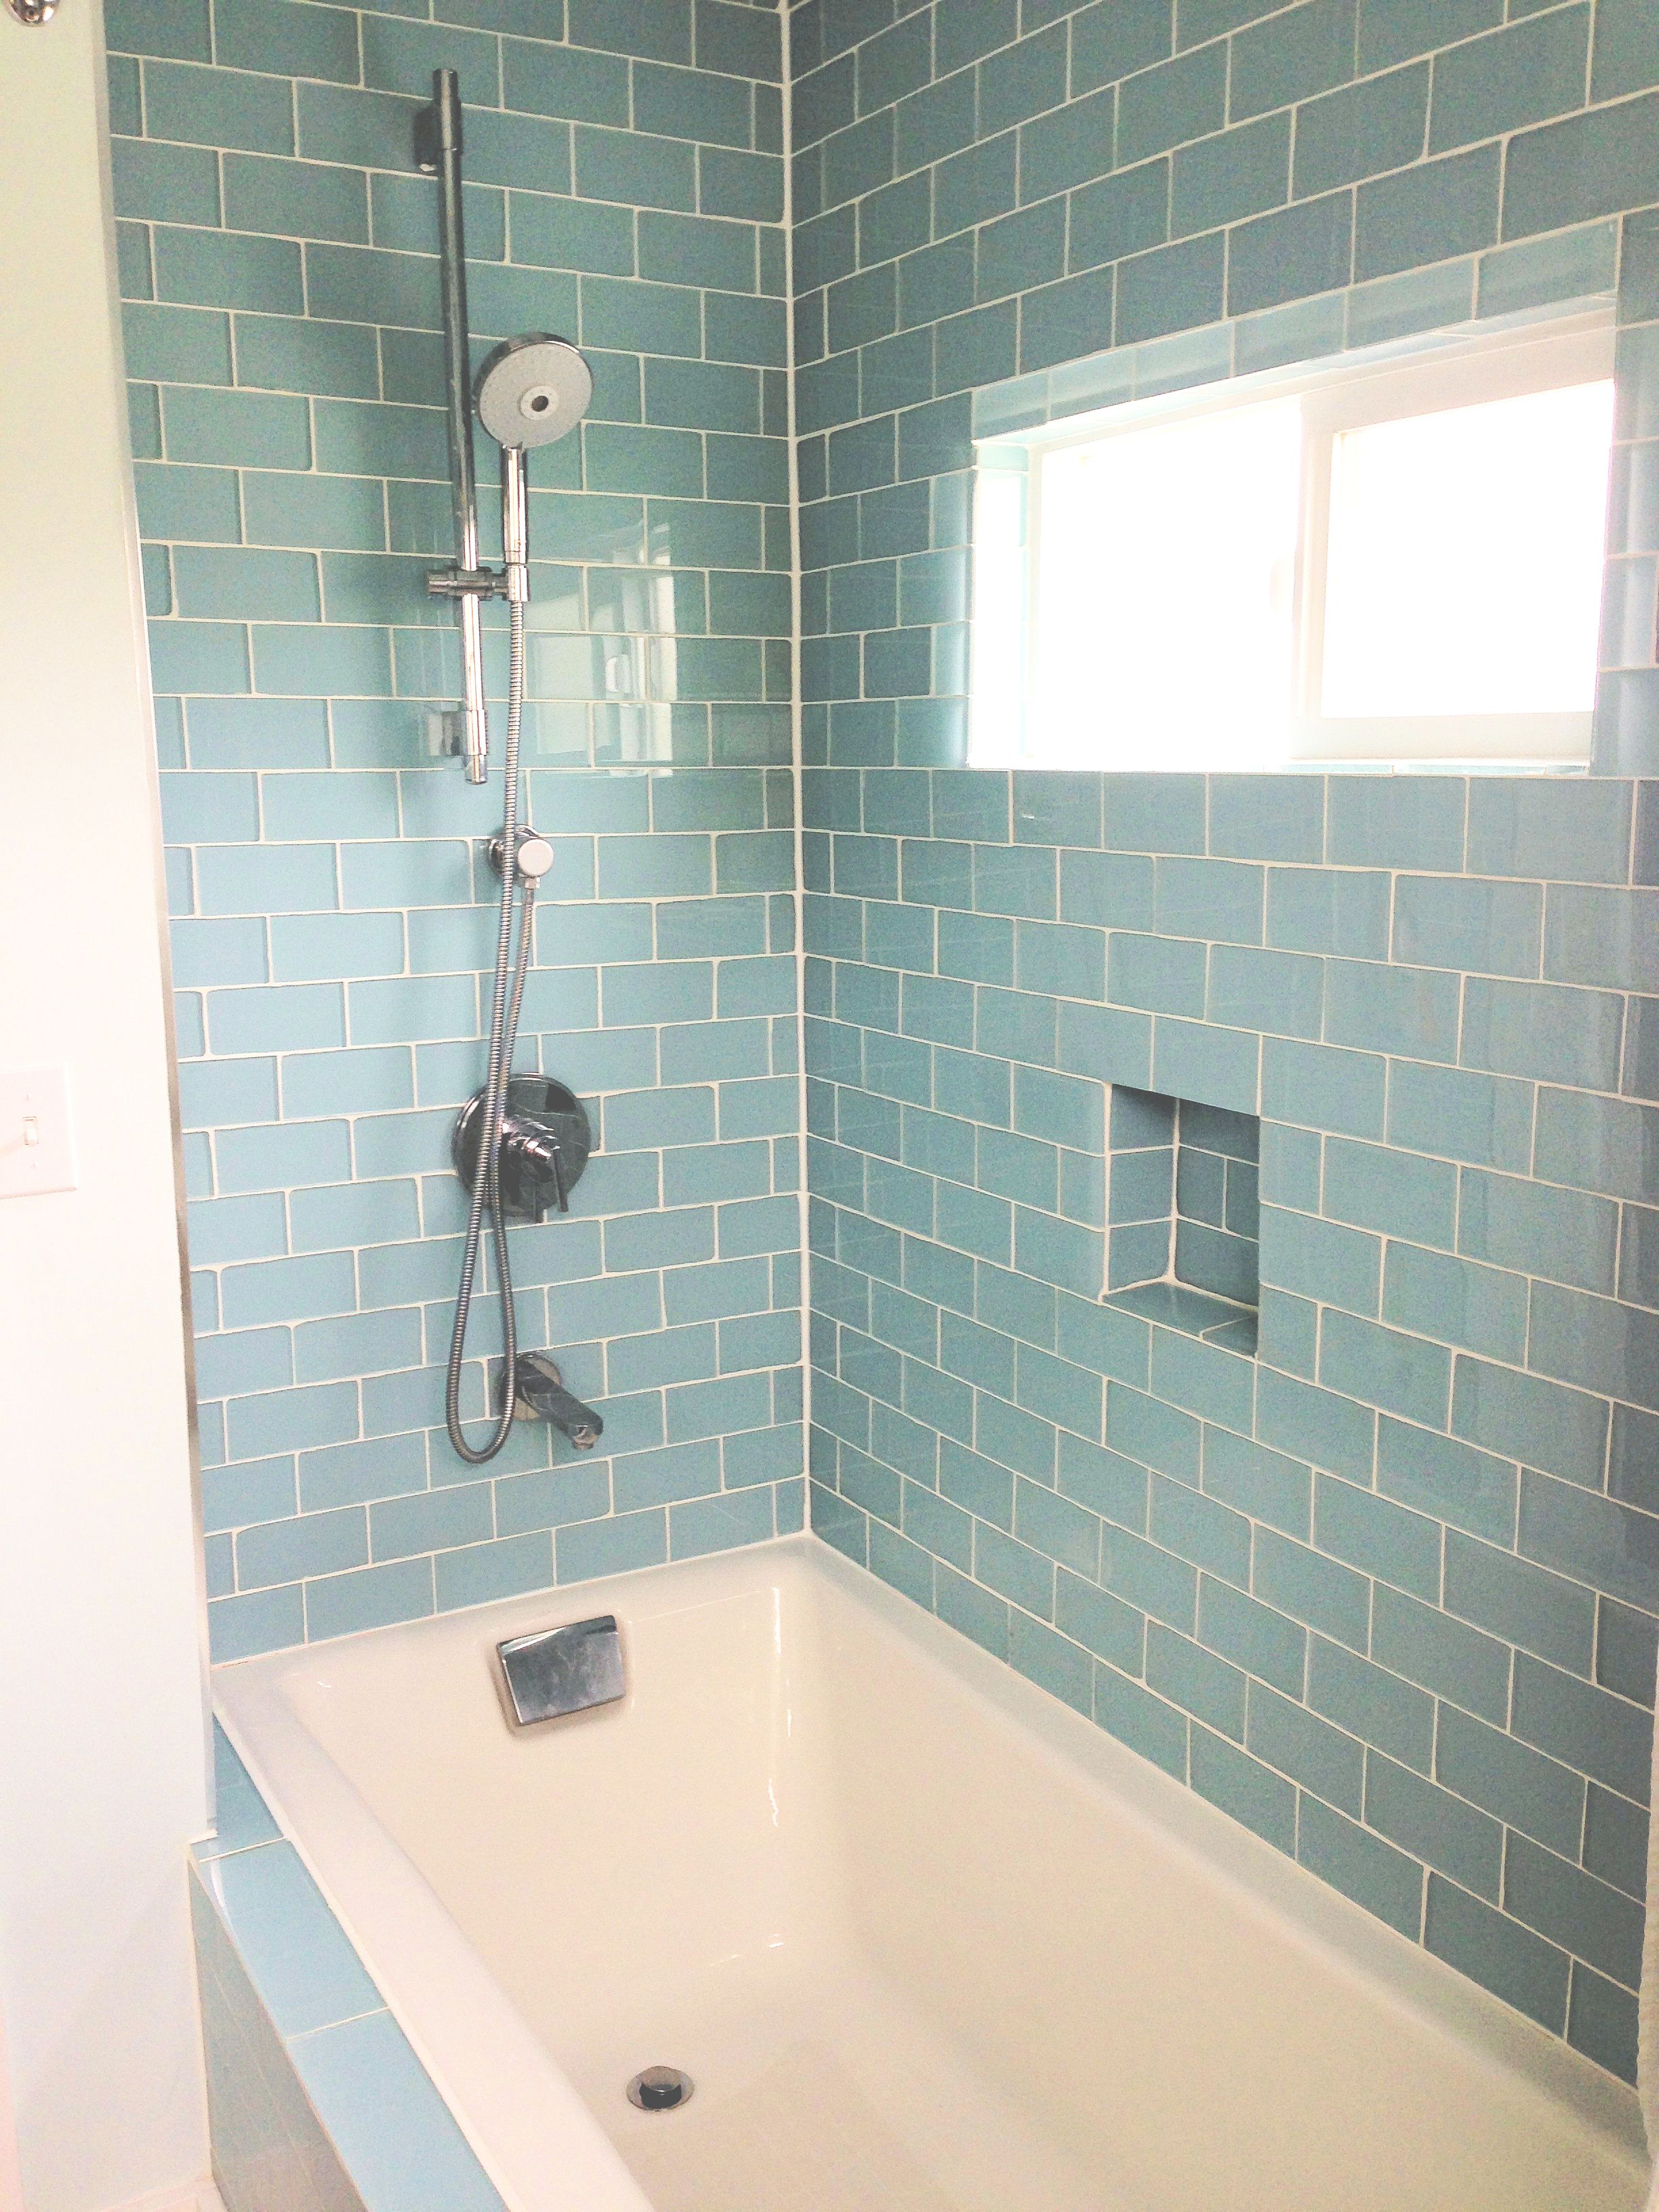 Vapor Glass Subway Tile | Subway tiles, Outlets and Glass